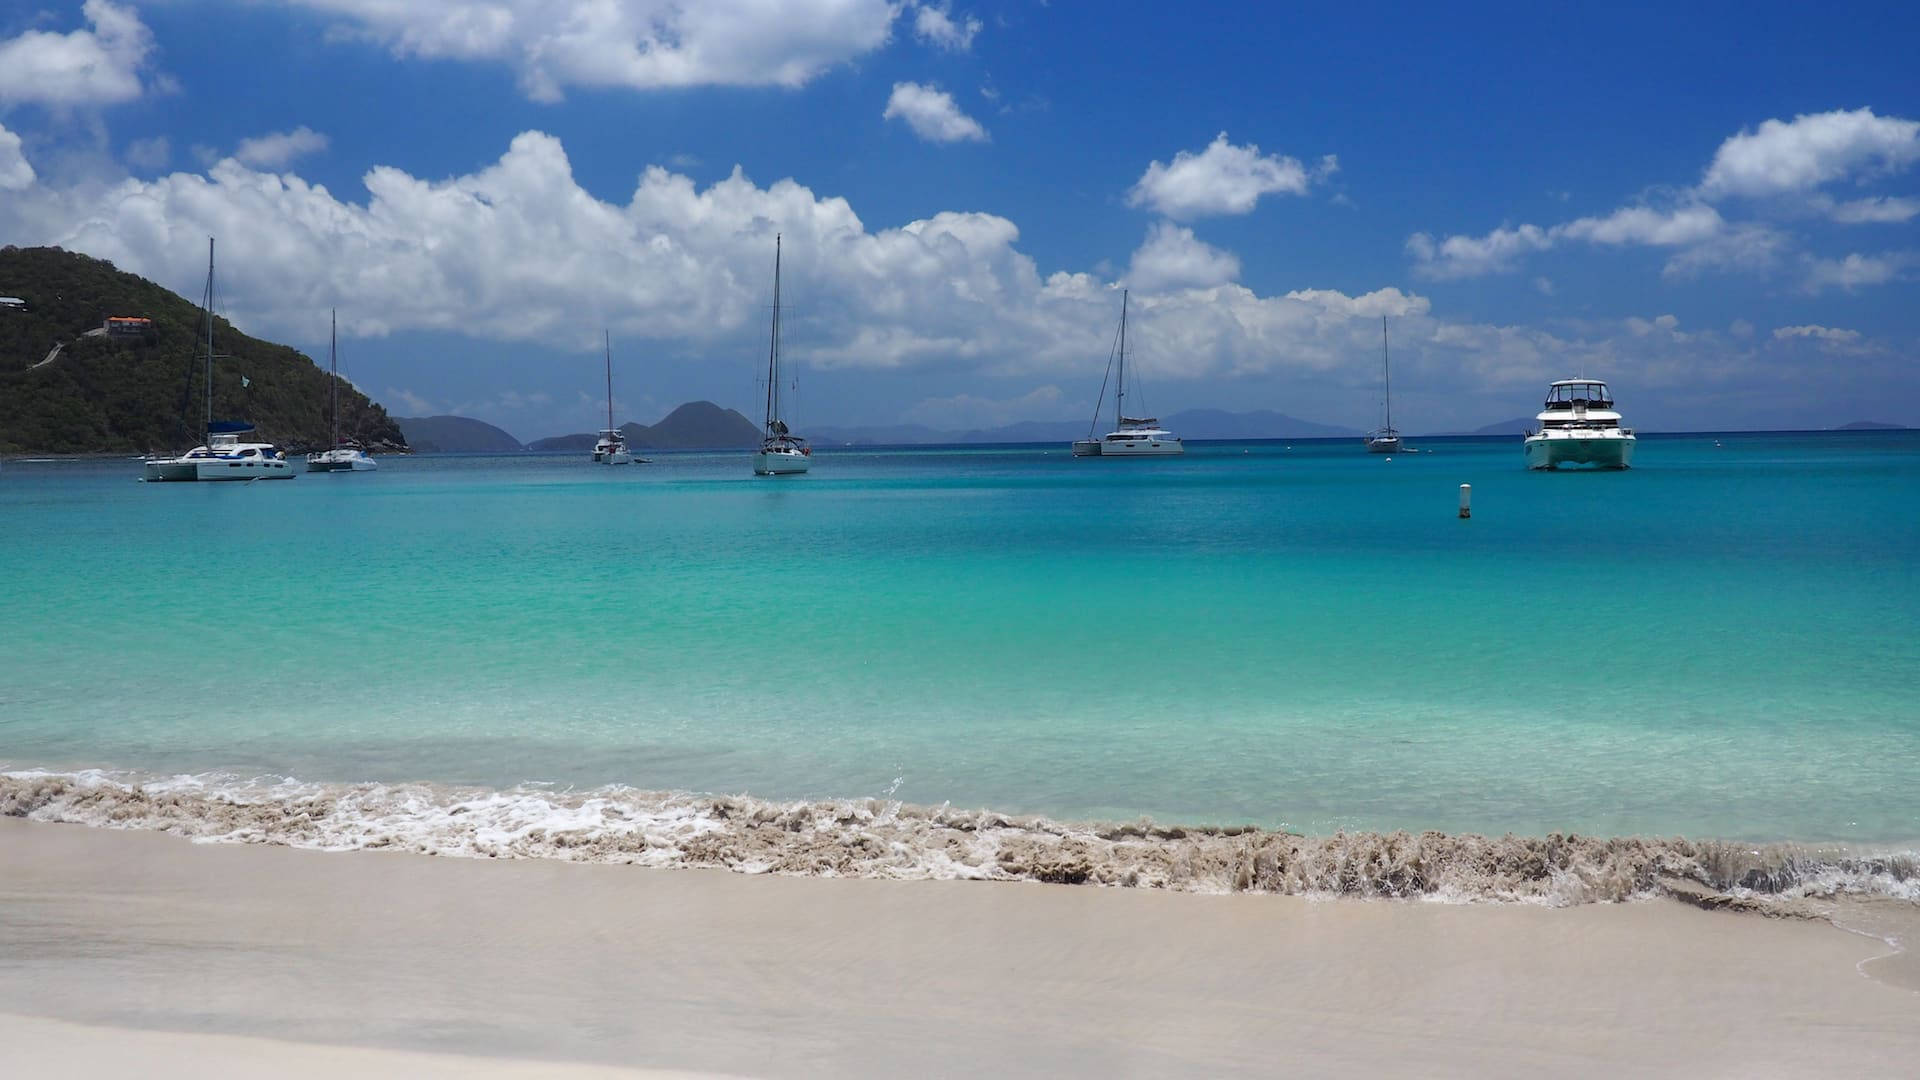 THE BEST BEACHES IN TORTOLA - AND HOW TO EXPLORE THEM IN A DAY